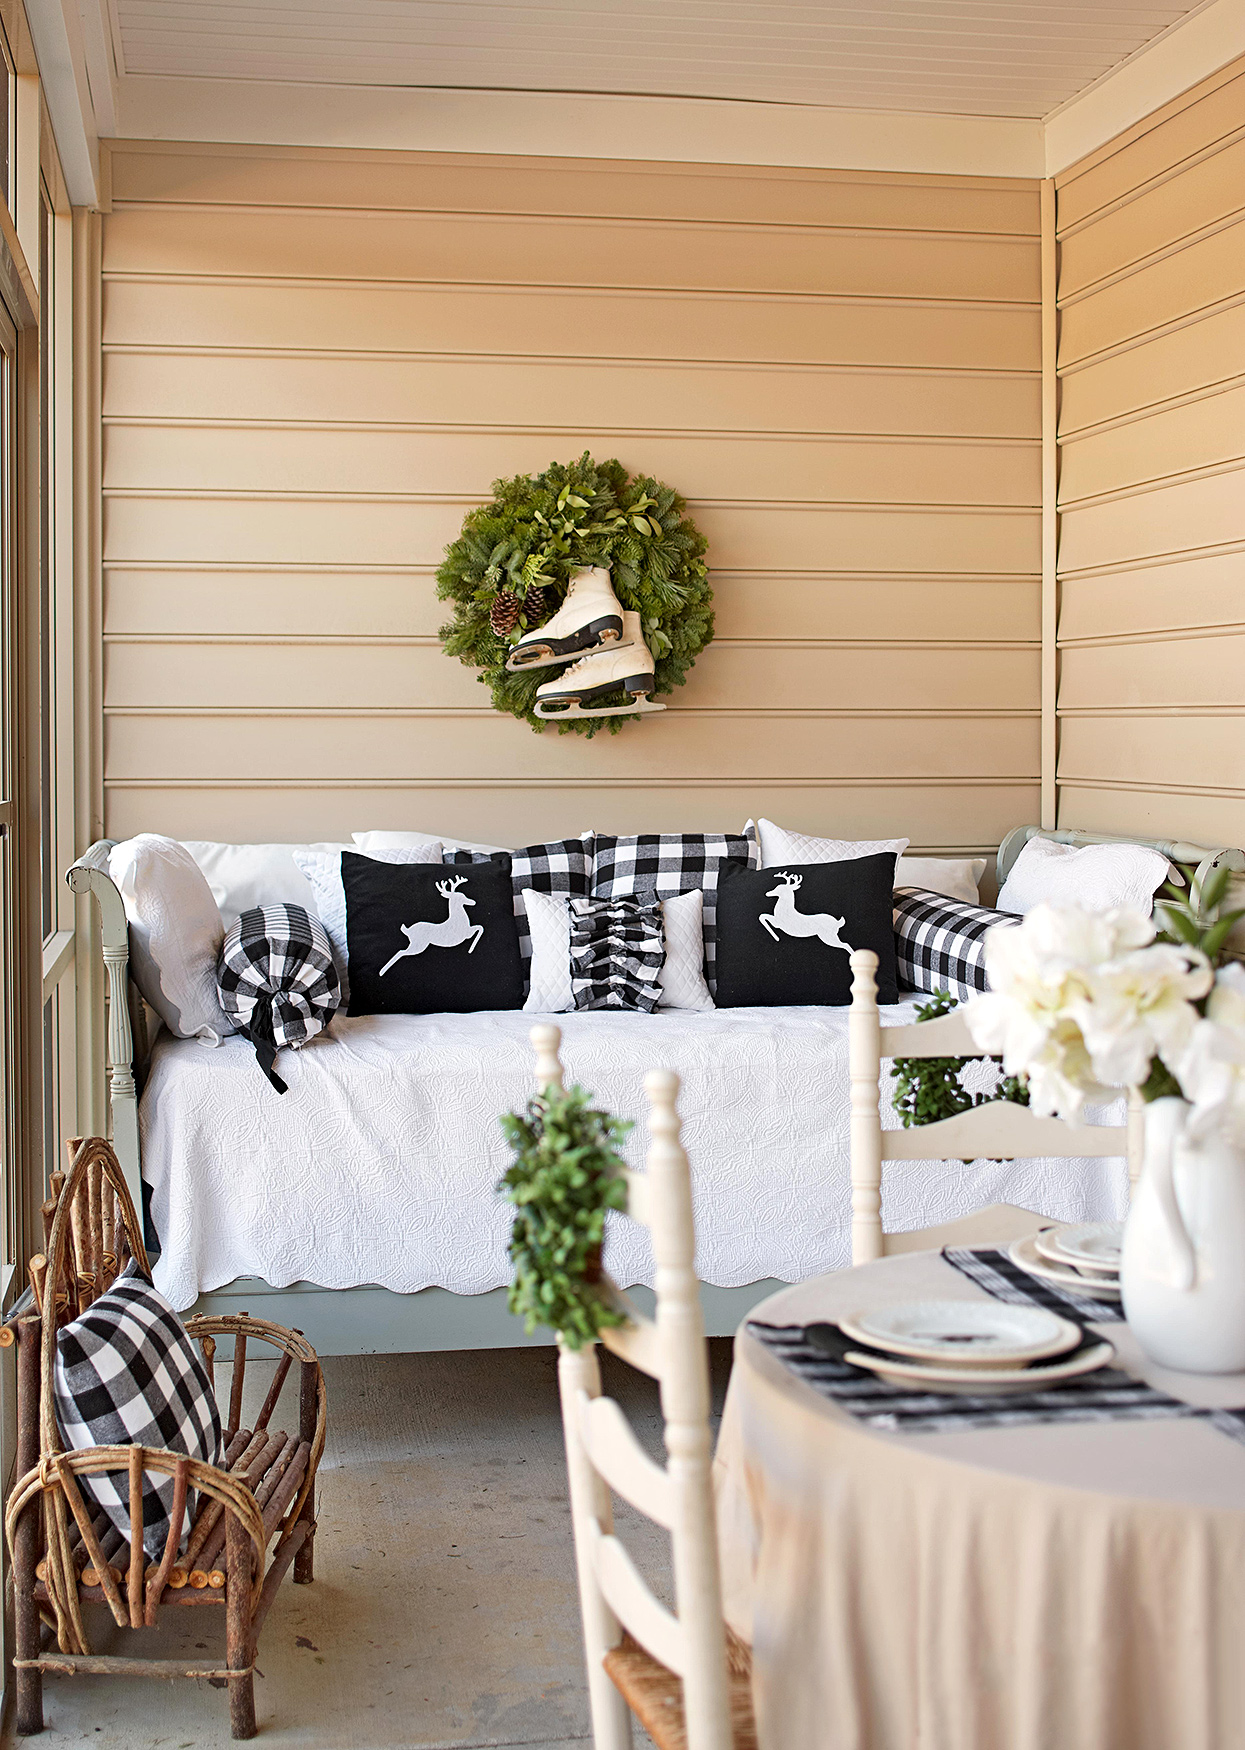 daybed with black and white winter linens underneath wreath with ice skates